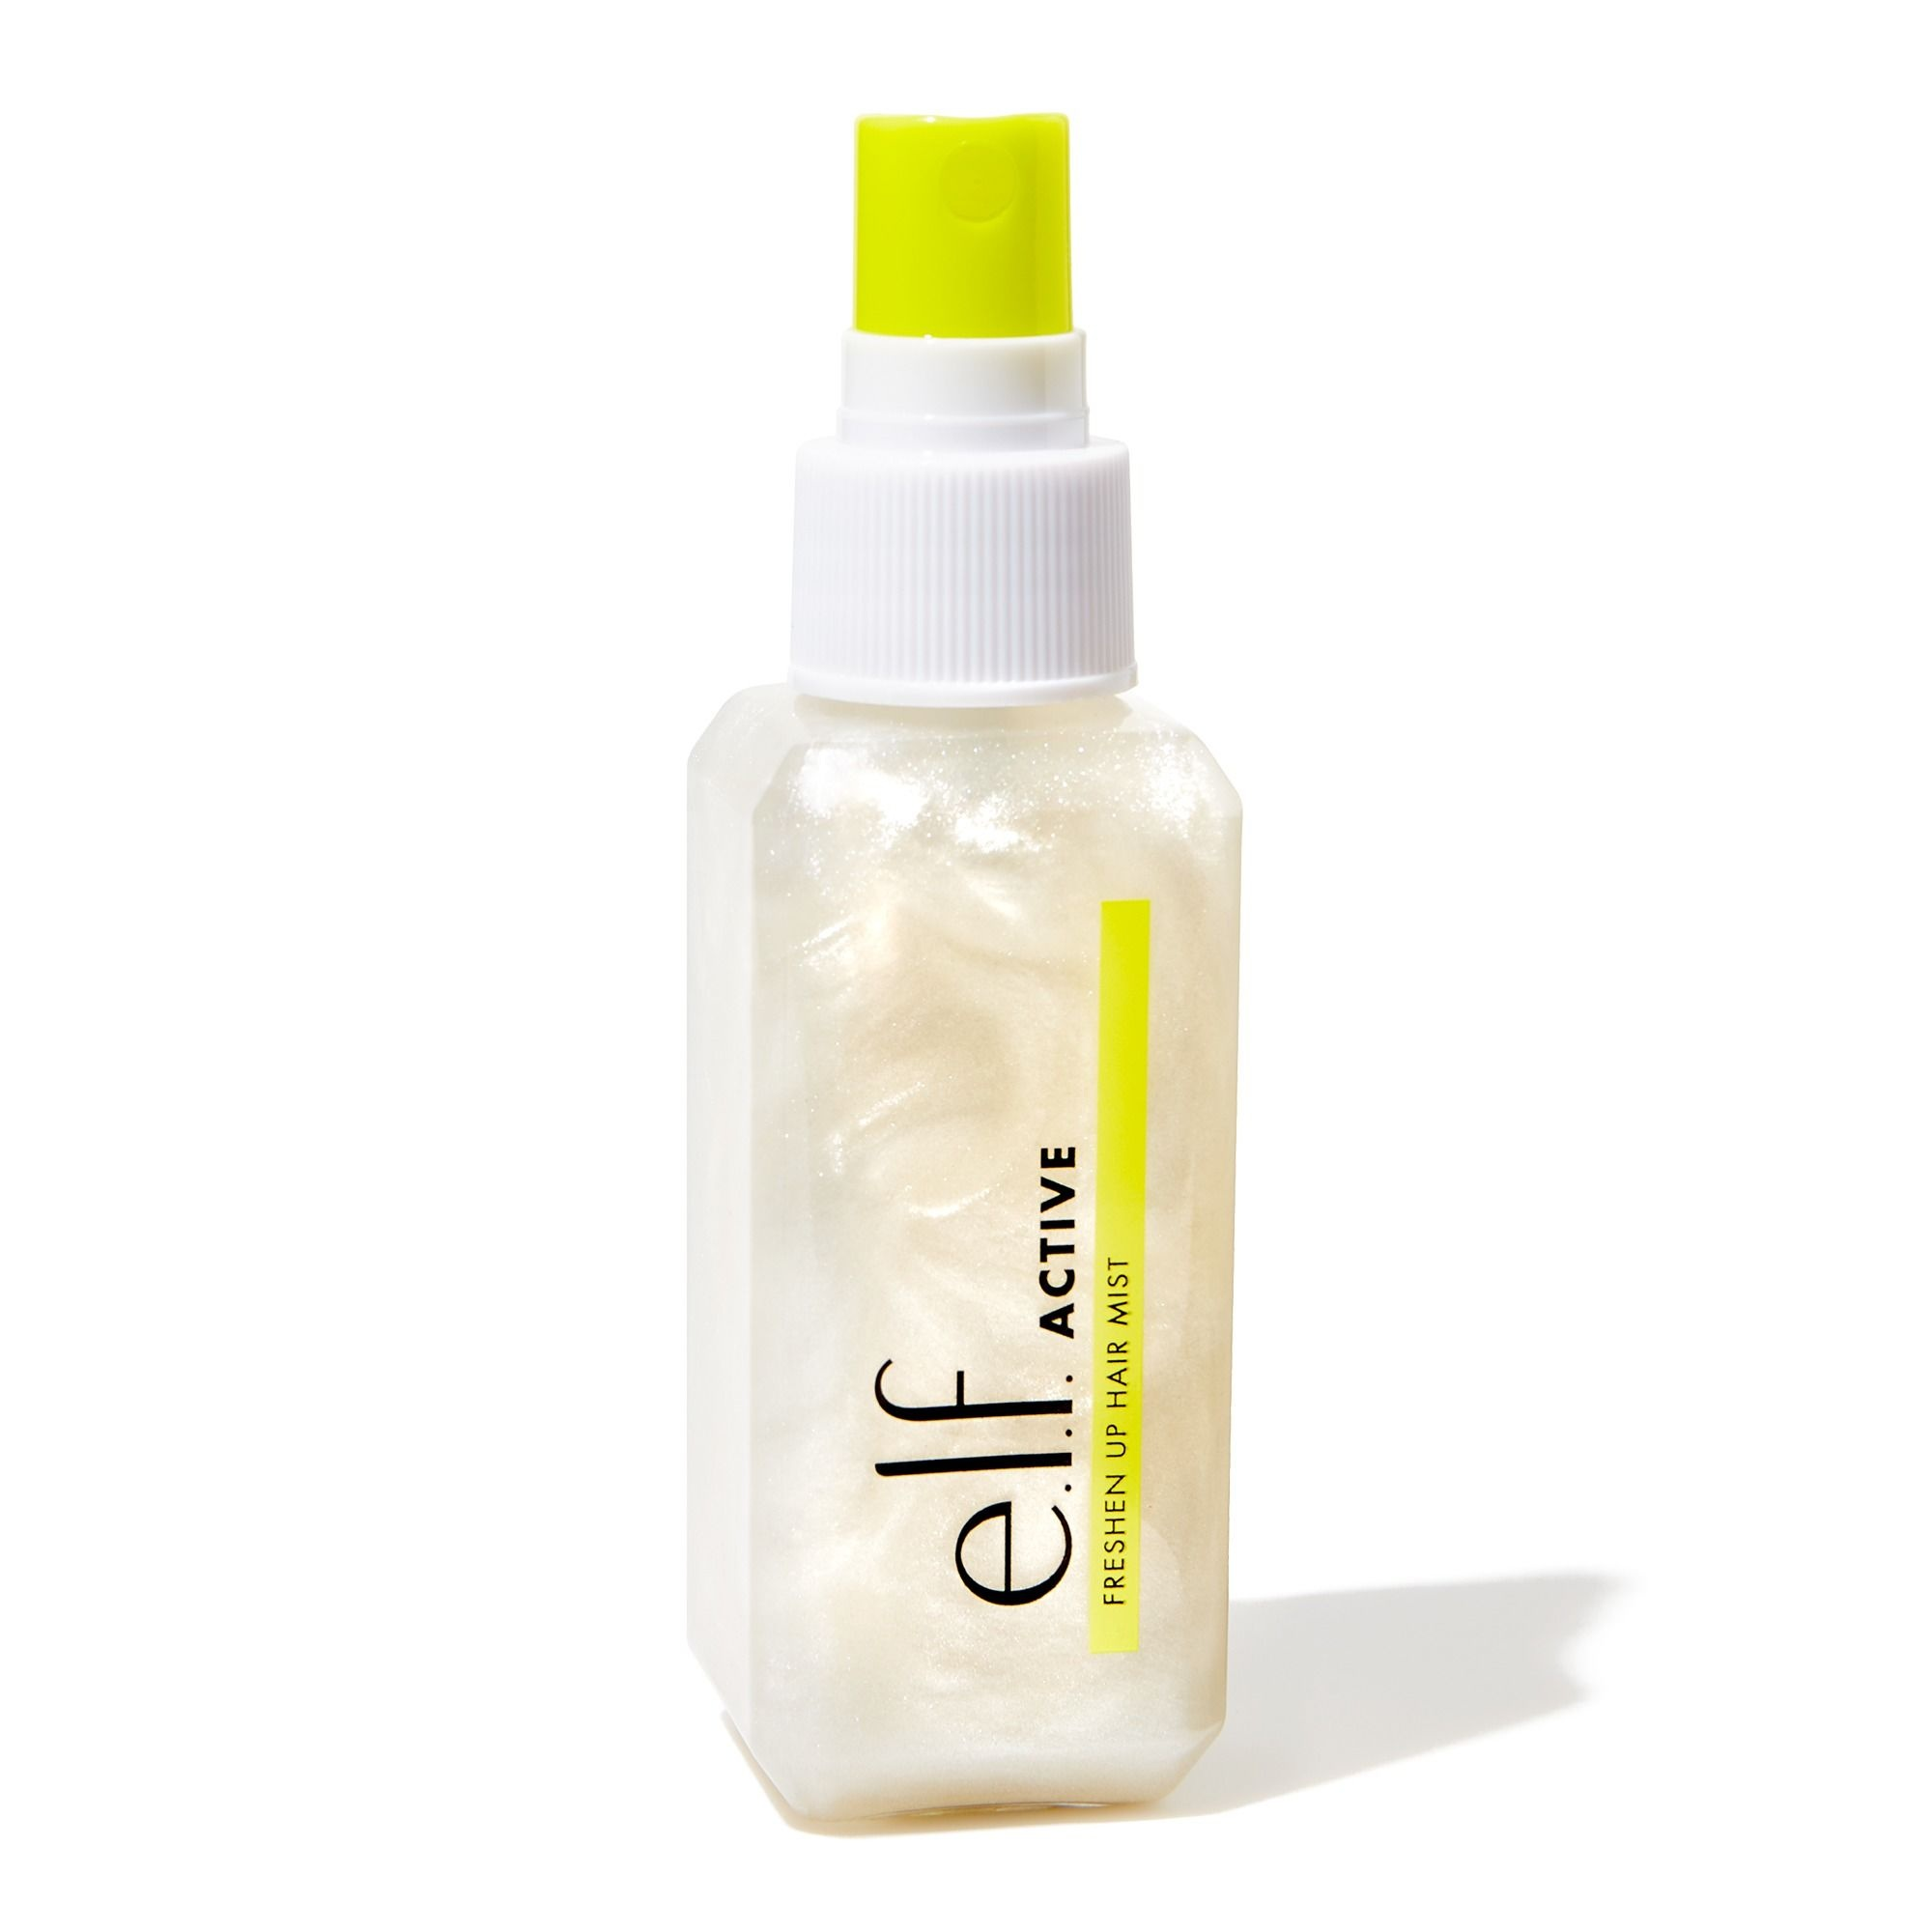 e.l.f. Cosmetics Freshen Up Hair Mist